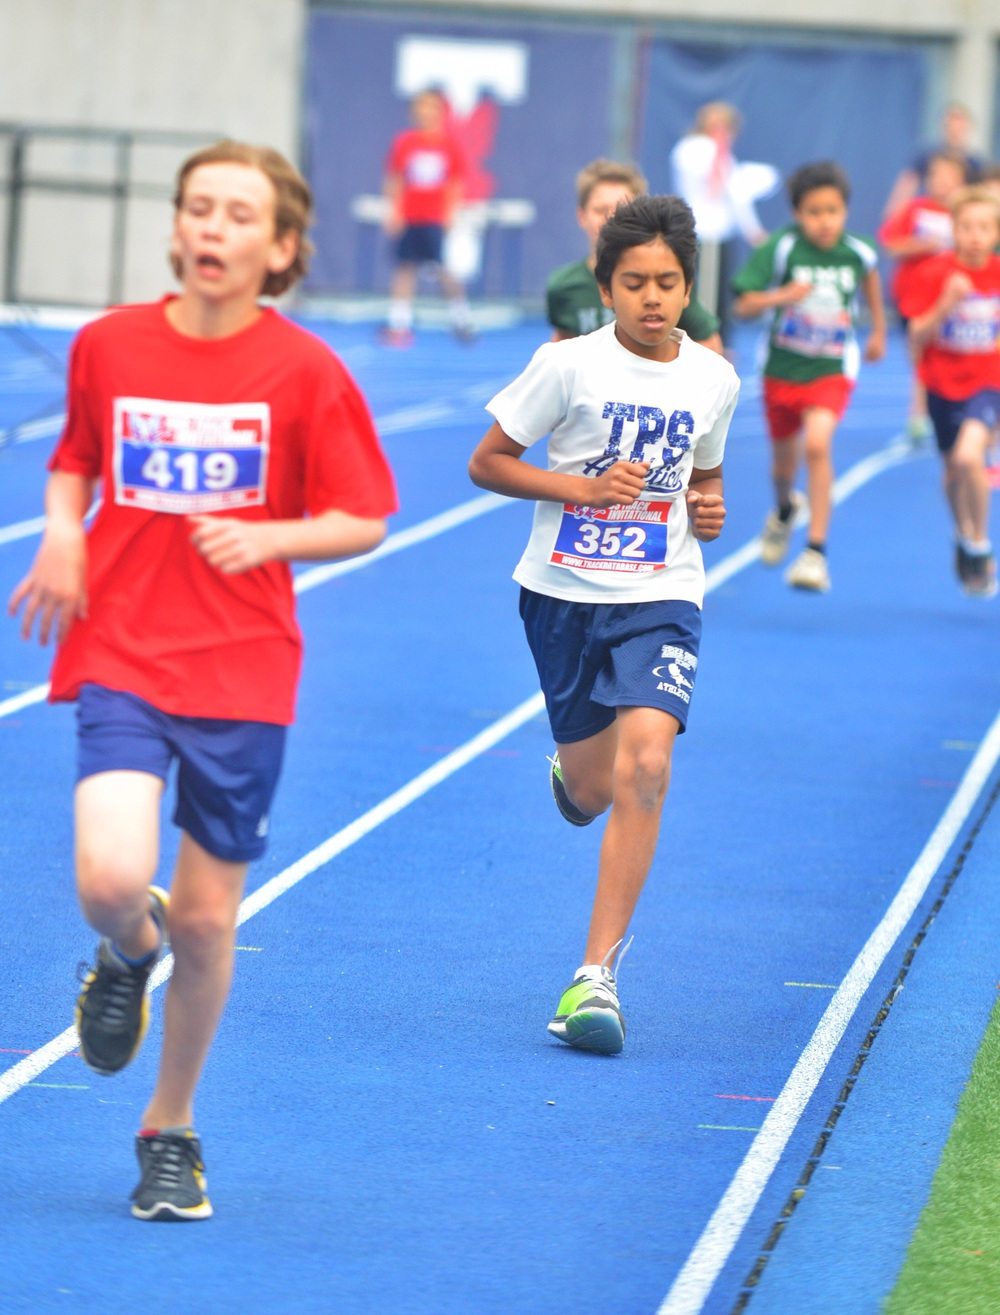 Chasing down second place in the Boys U-12 400m.